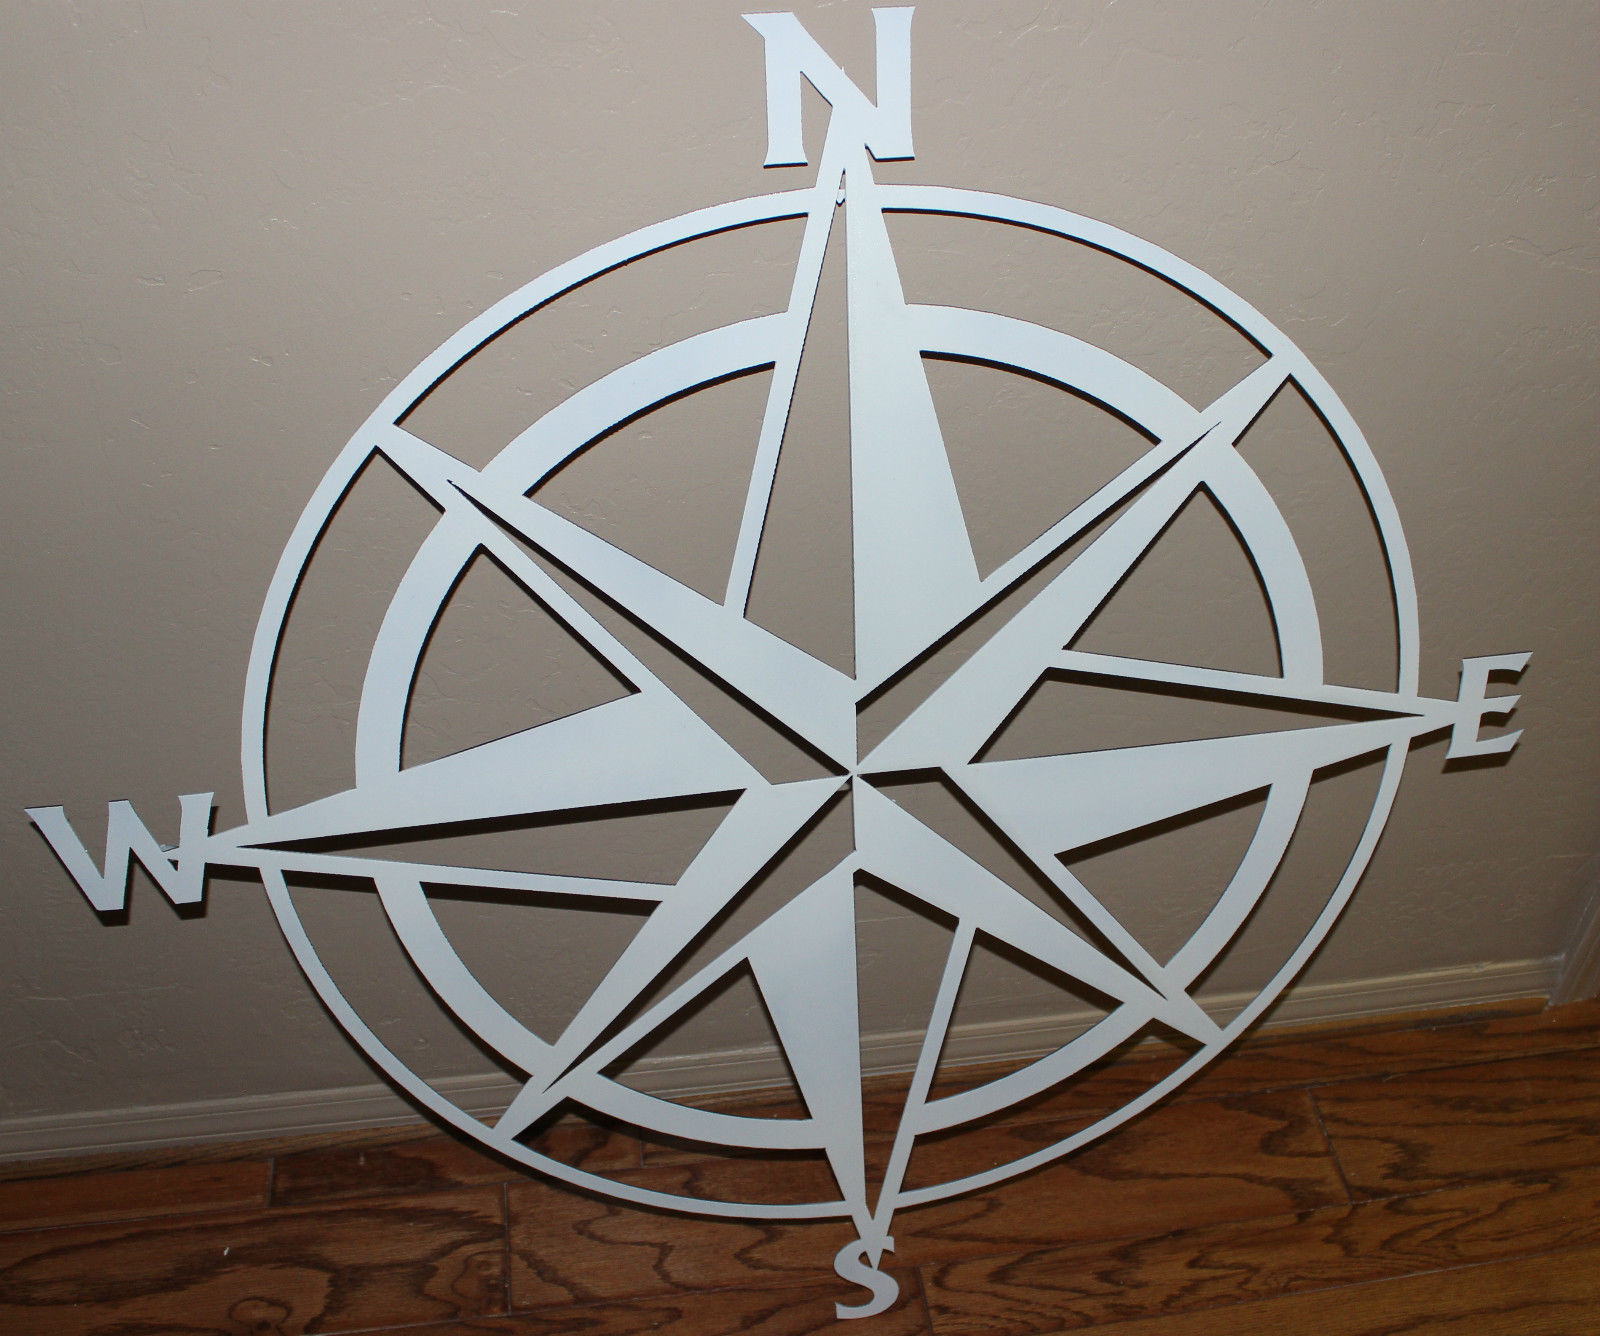 nautical compass rose wall art decor 26quot white gloss With kitchen colors with white cabinets with compass rose outdoor wall art